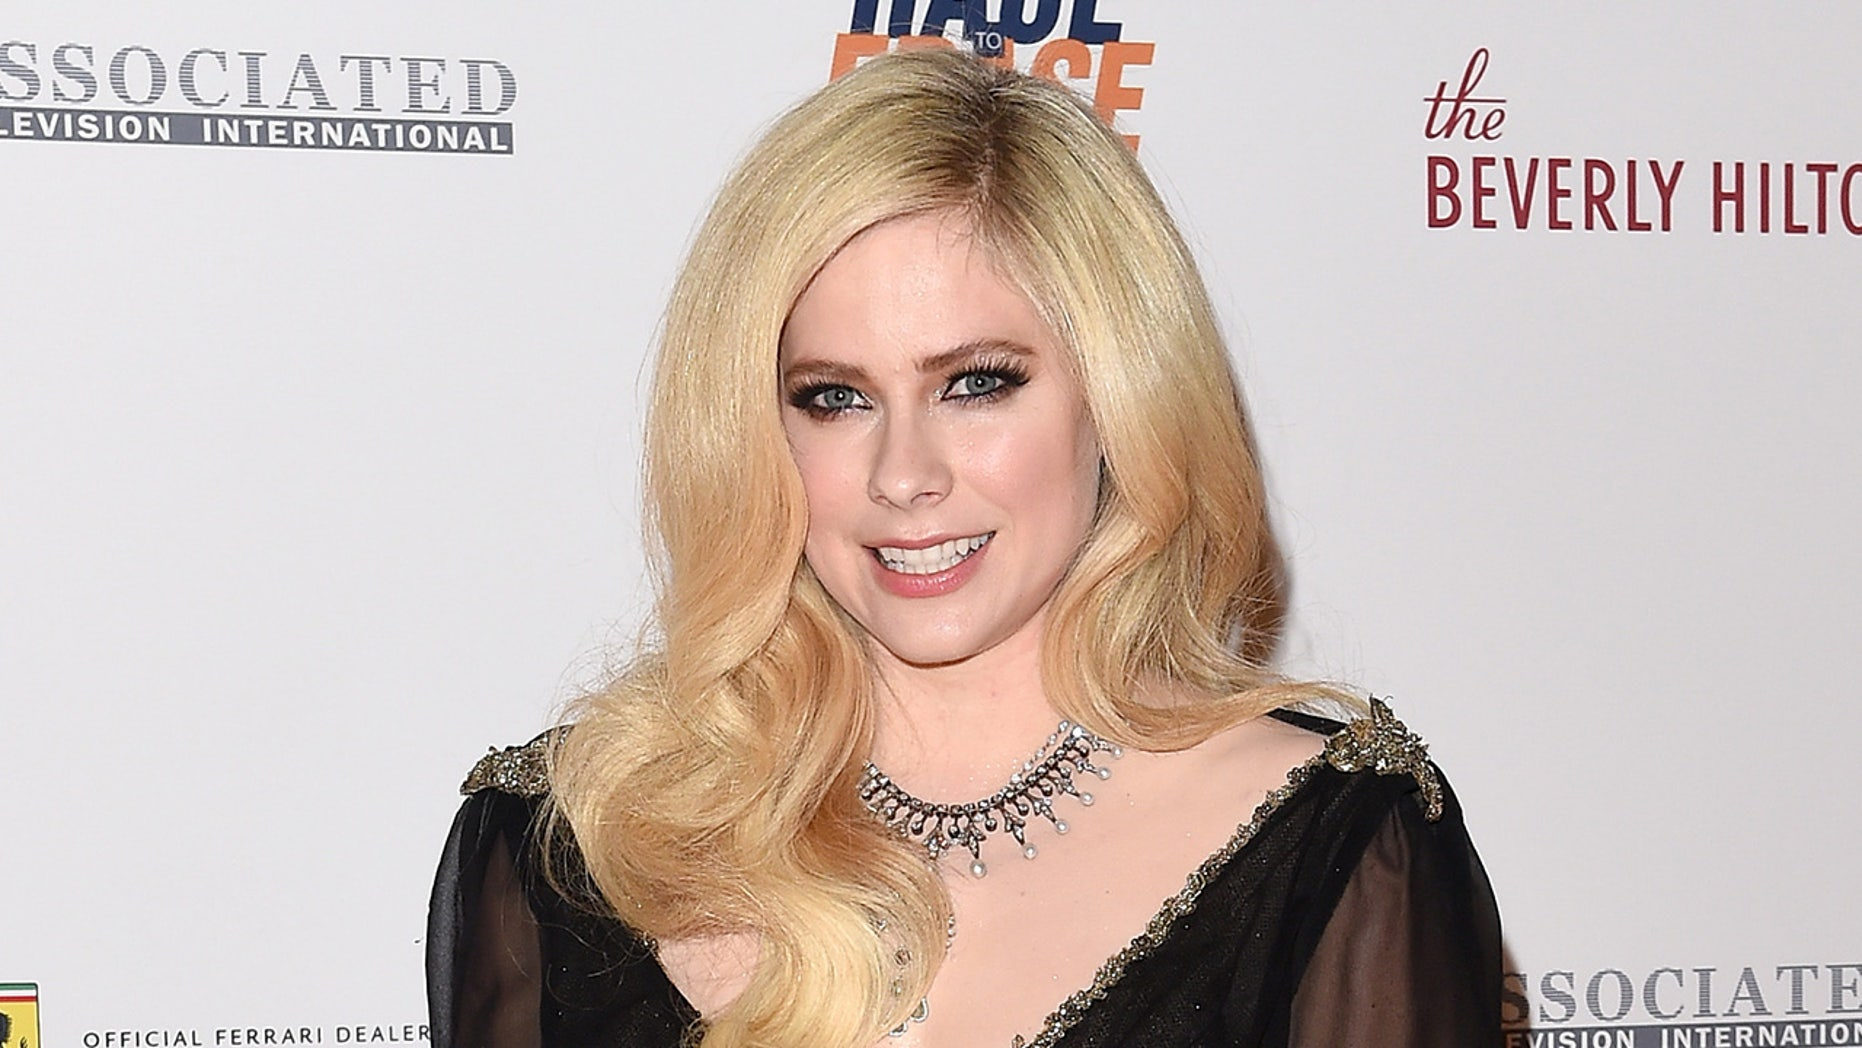 Avril Lavigne addressed the fact that not only is she alive, but she was never replaced with a look-alike double, despite the viral conspiracy rumor.